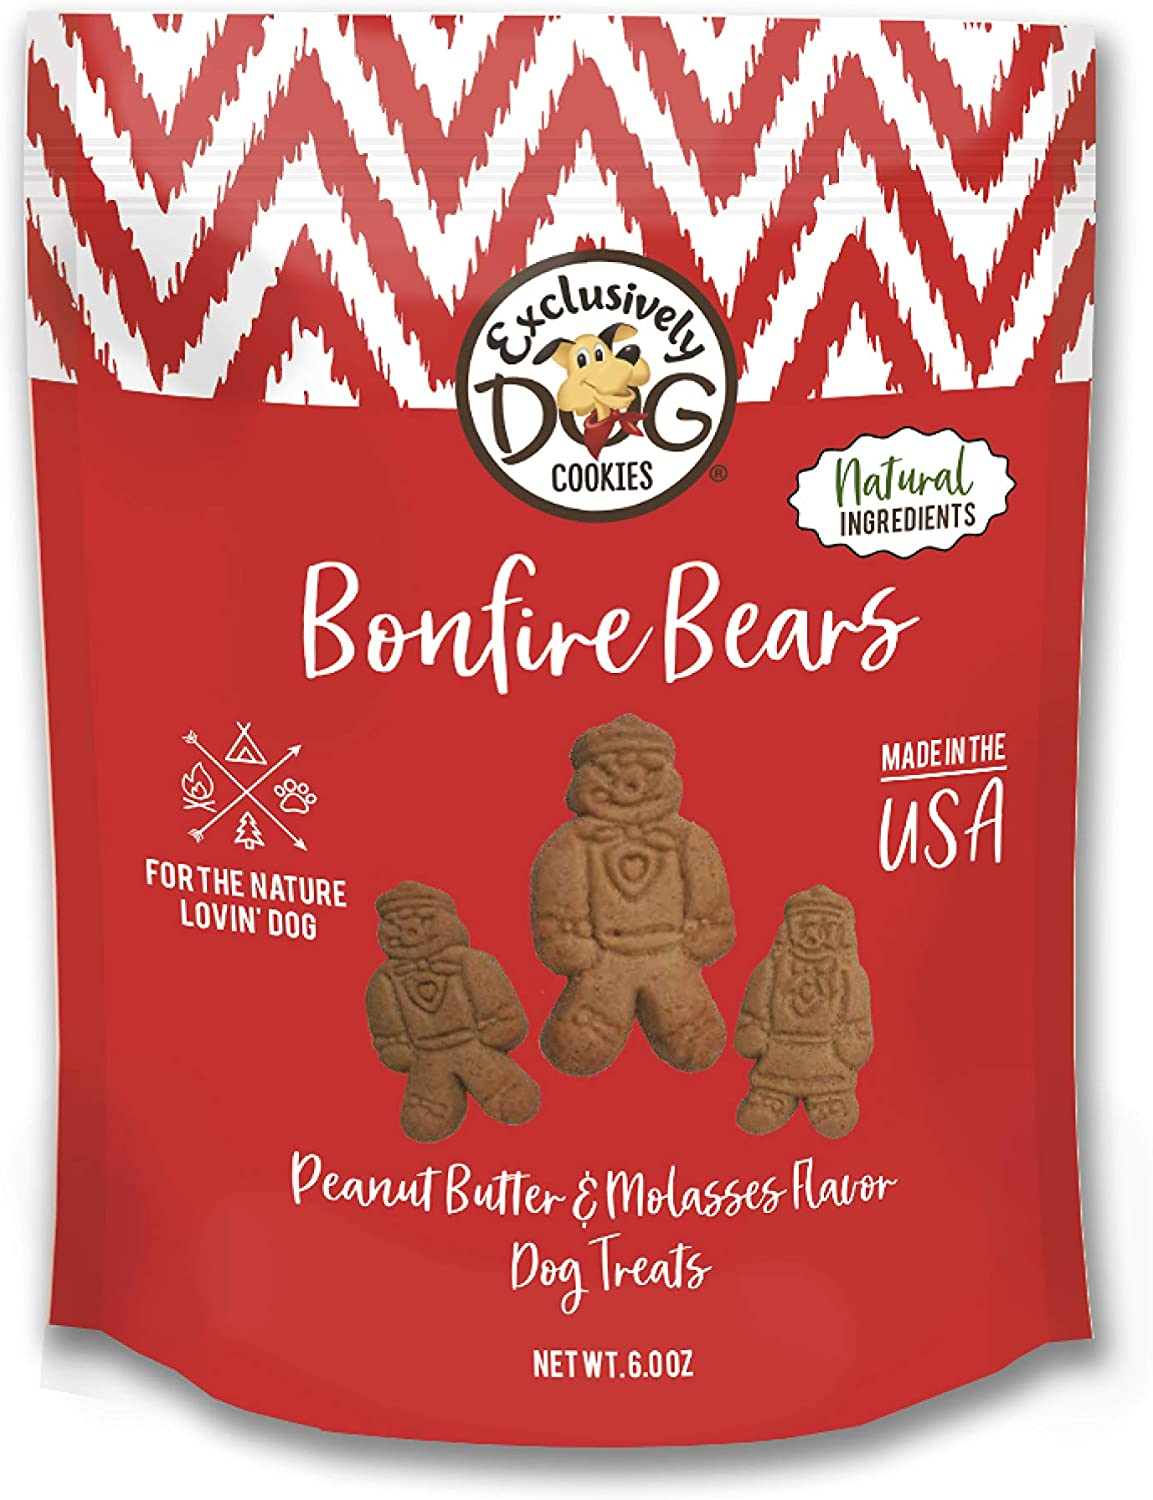 Exclusively Dog Cookies 4 years warranty Bonfire oz red 6 Classic Bears